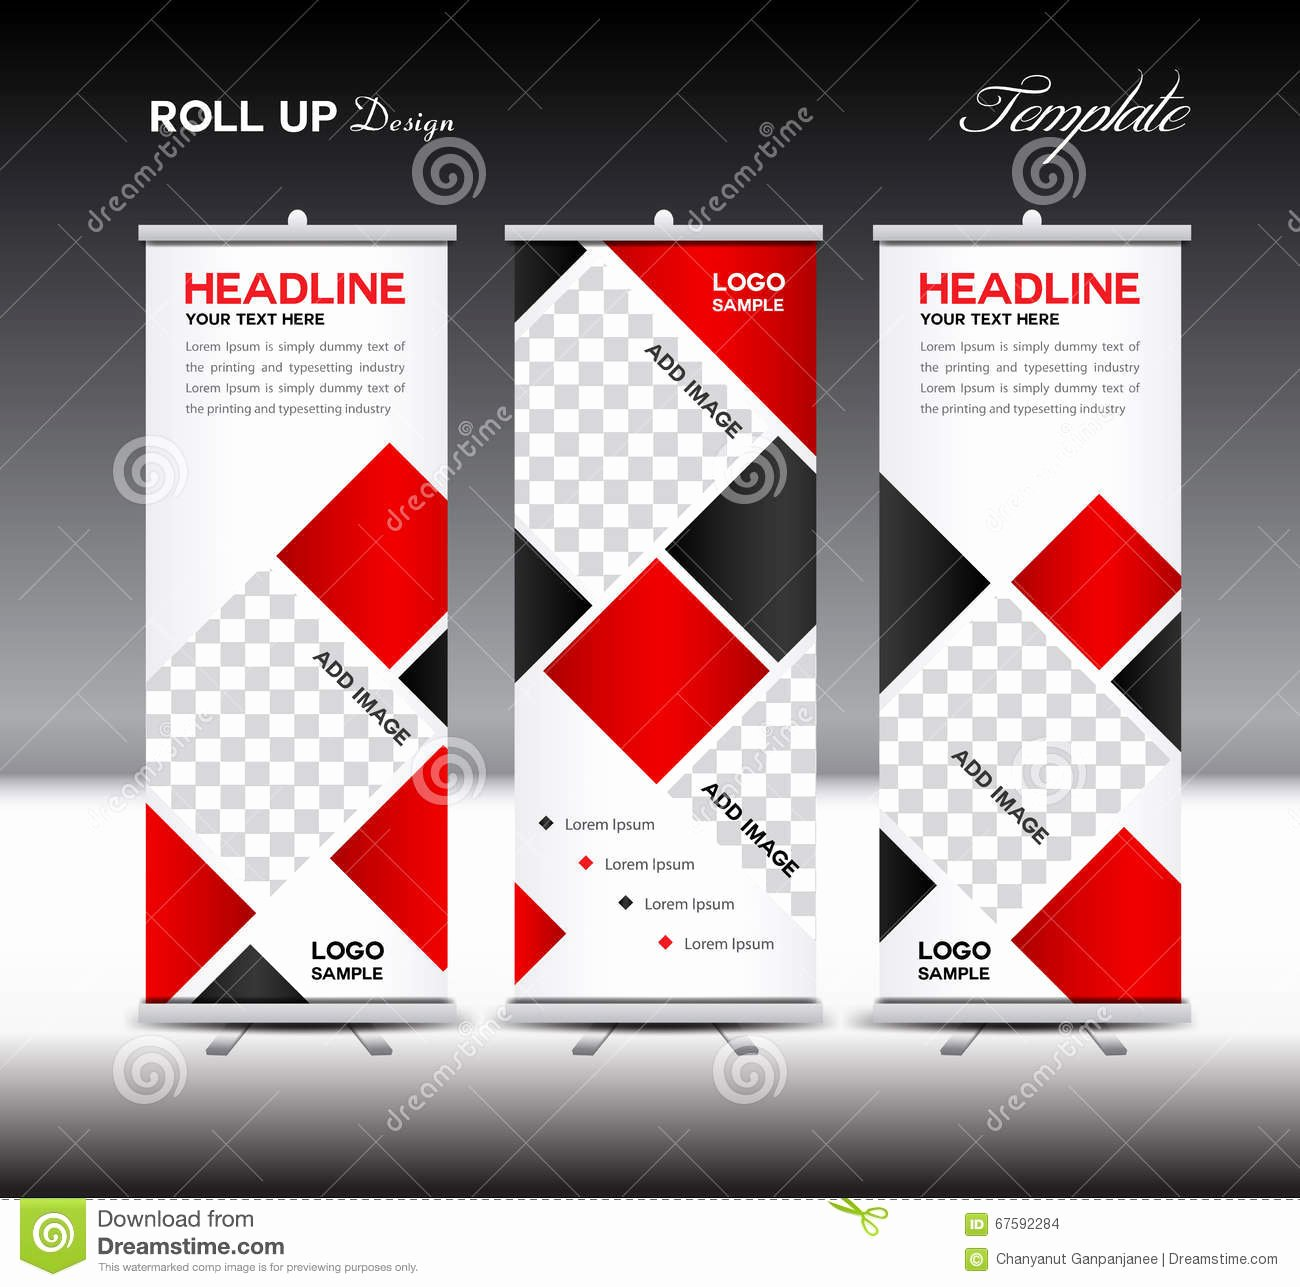 Pull Up Banner Template Luxury Red Roll Up Banner Template Vector Illustration Polygon